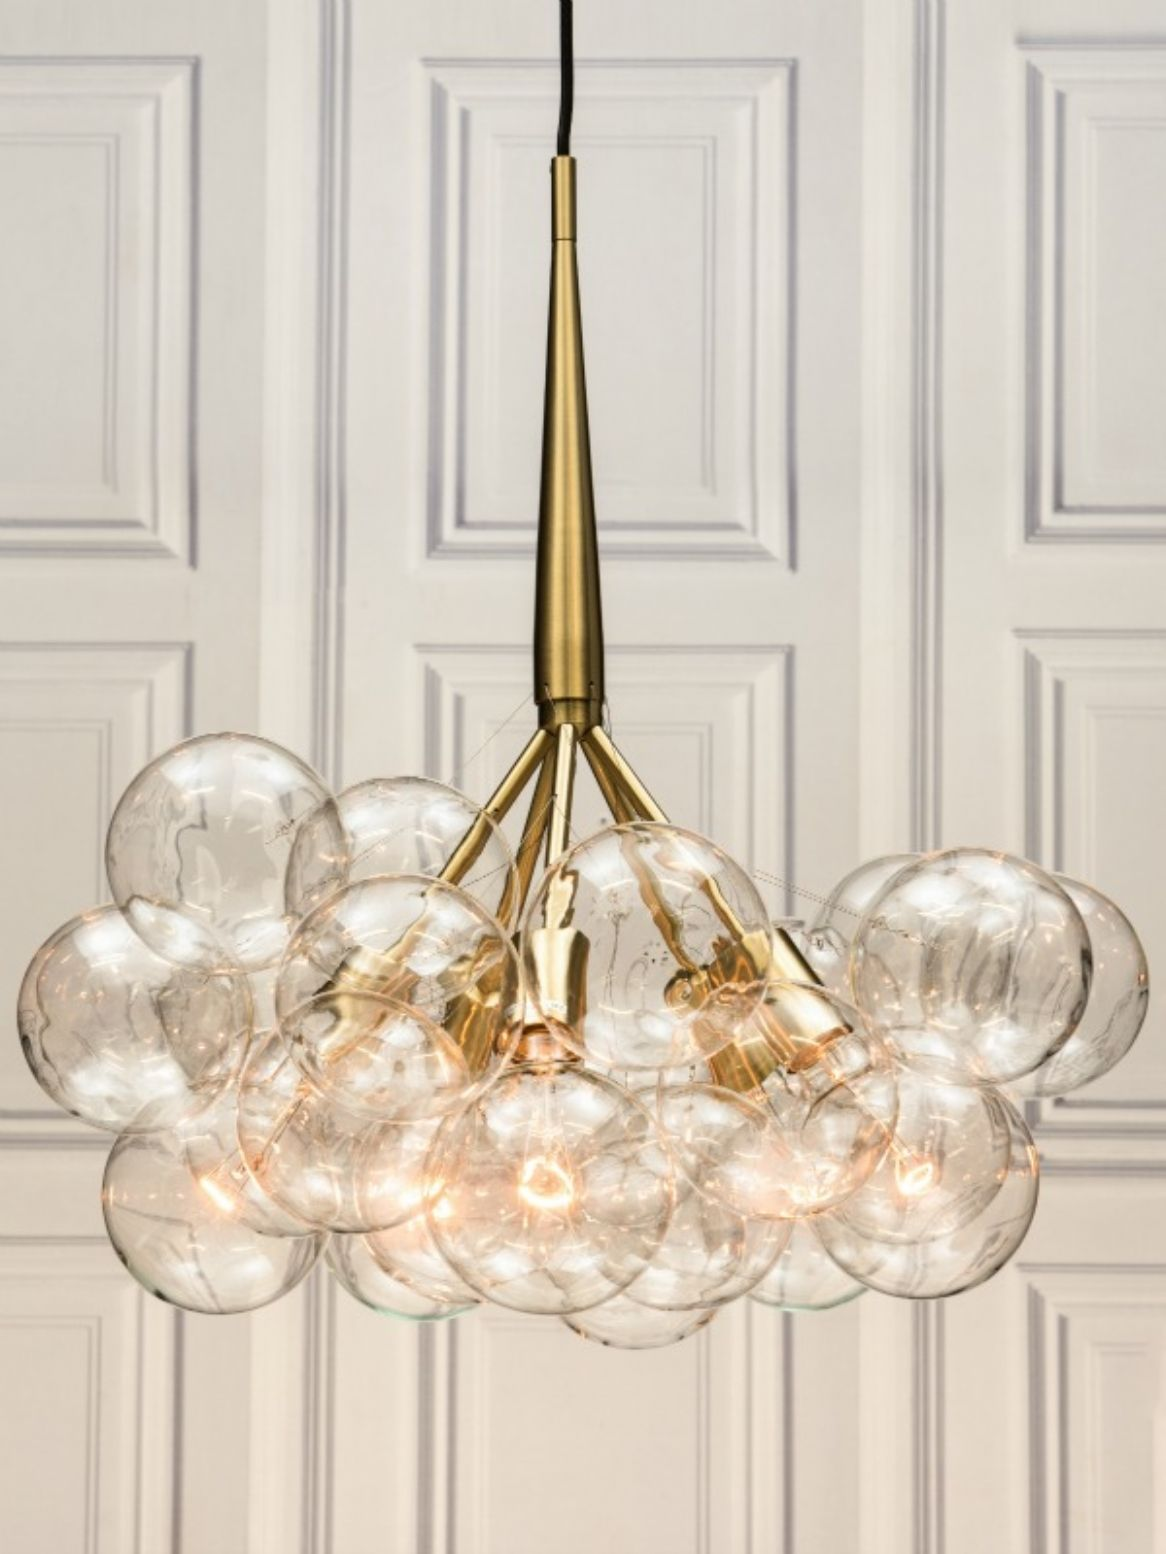 Httpchantellelightingproductglass globe chandelier httpchantellelightingproductglass globe chandelier 027184 mozeypictures Choice Image